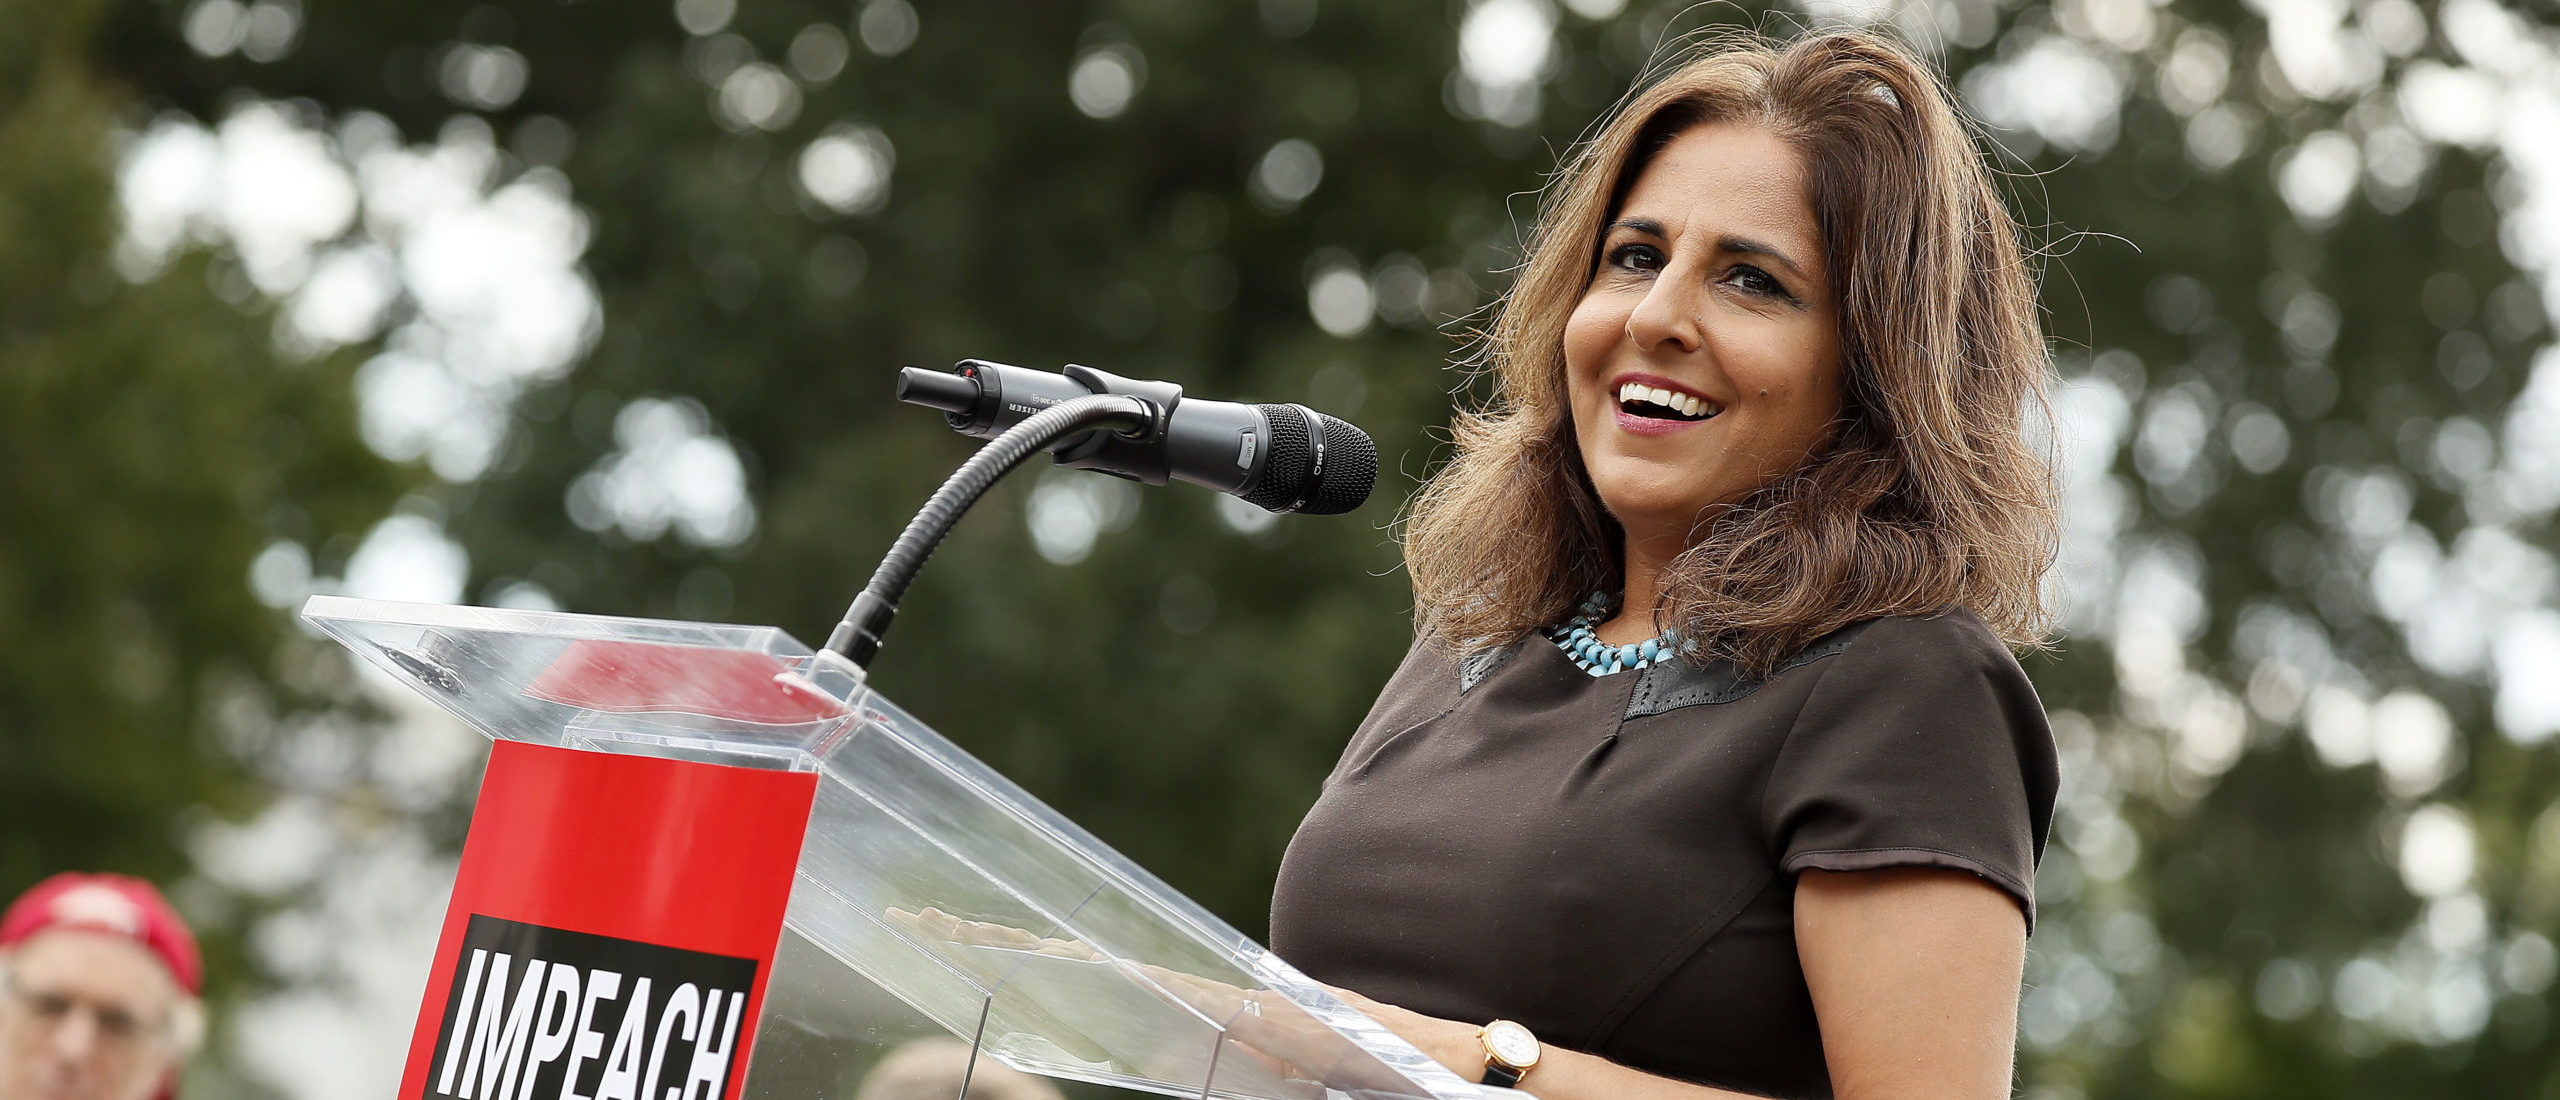 """WASHINGTON, DC - SEPTEMBER 26: Neera Tanden, president, Center for American Progress, speaks at the """"Impeachment Now!"""" rally in support of an immediate inquiry towards articles of impeachment against U.S. President Donald Trump on the grounds of the U.S. Capital on September 26, 2019in Washington, DC. (Photo by Paul Morigi/Getty Images for MoveOn Political Action)"""